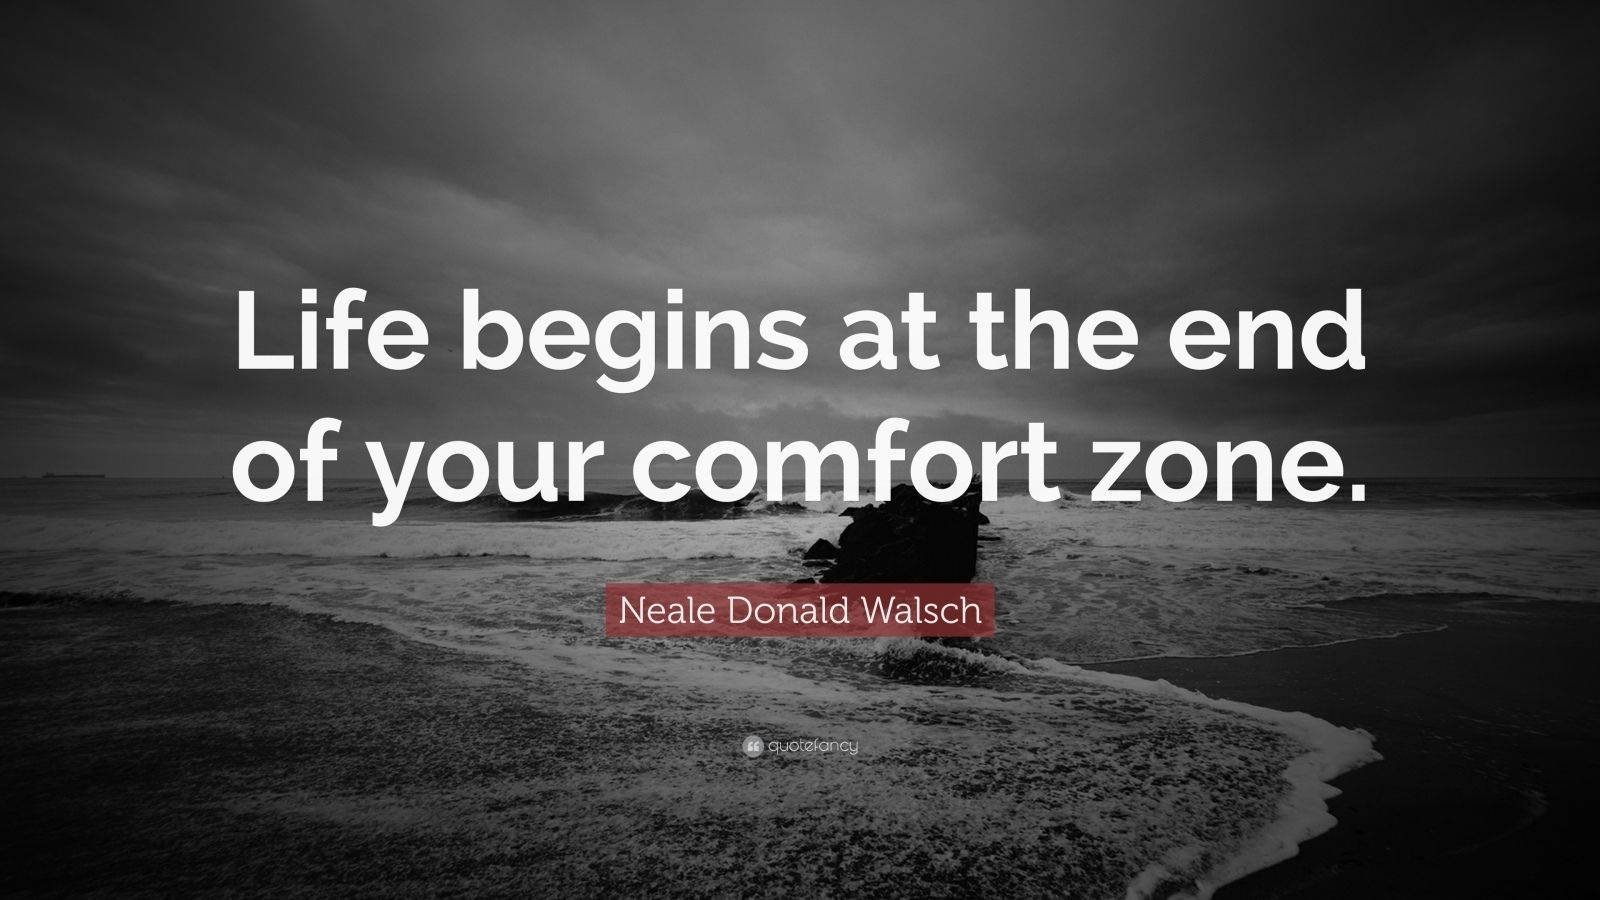 Motivational Quotes On Life Best Neale Donald Walsch Quotes 100 Wallpapers  Quotefancy